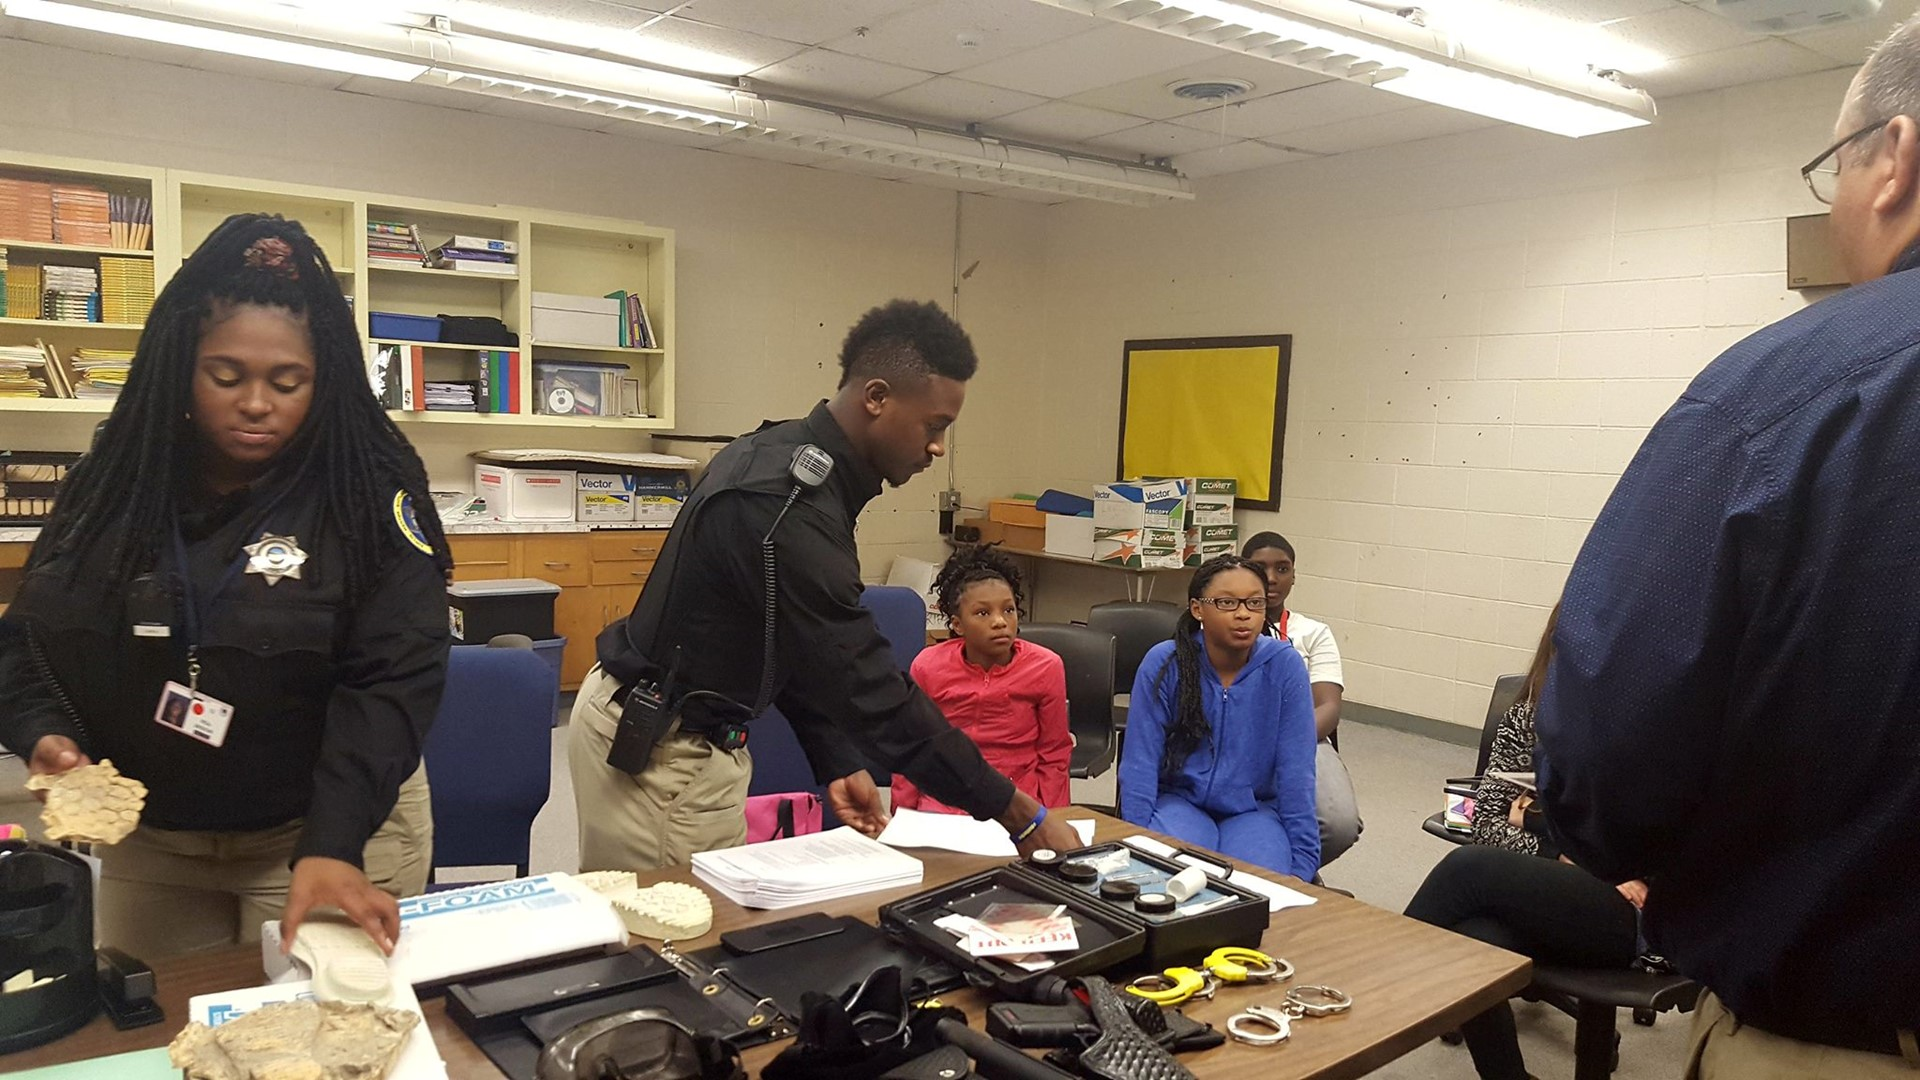 Criminal Justice students working on a project in class